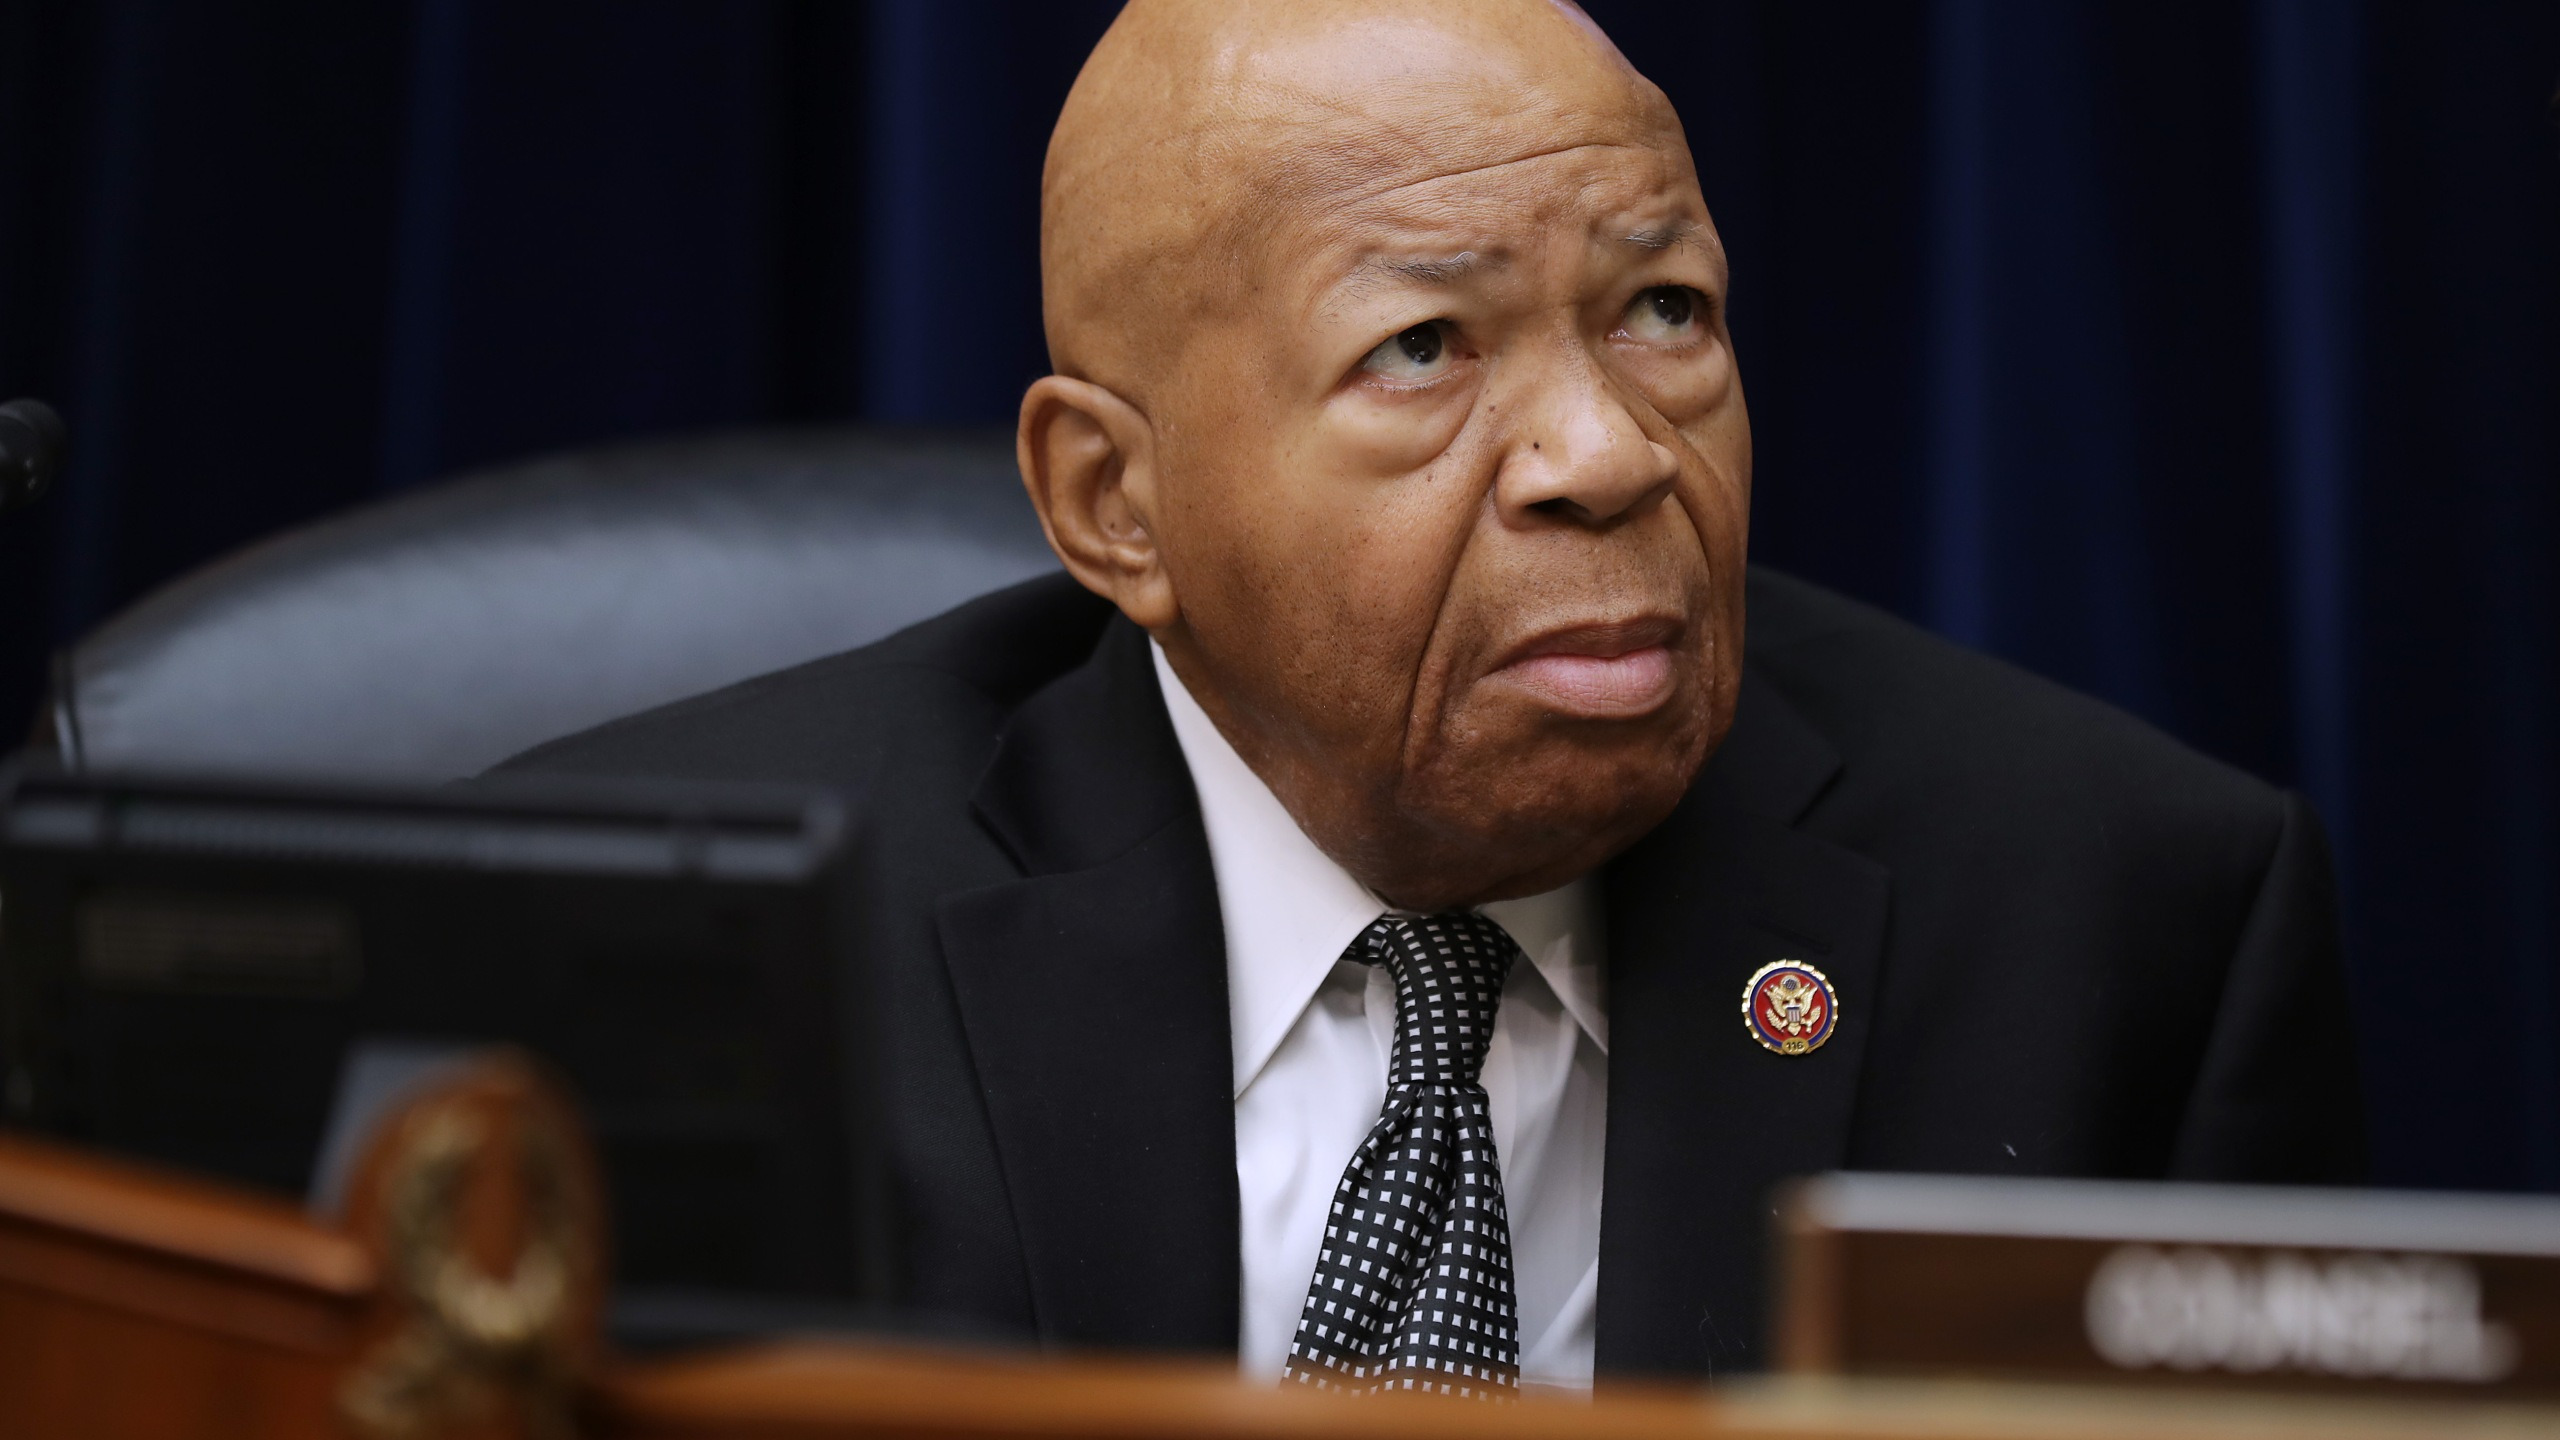 House Oversight and Government Reform Committee Chairman Elijah Cummings (D-MD) prepares for a hearing on on July 26, 2019. (Credit: Chip Somodevilla/Getty Images)